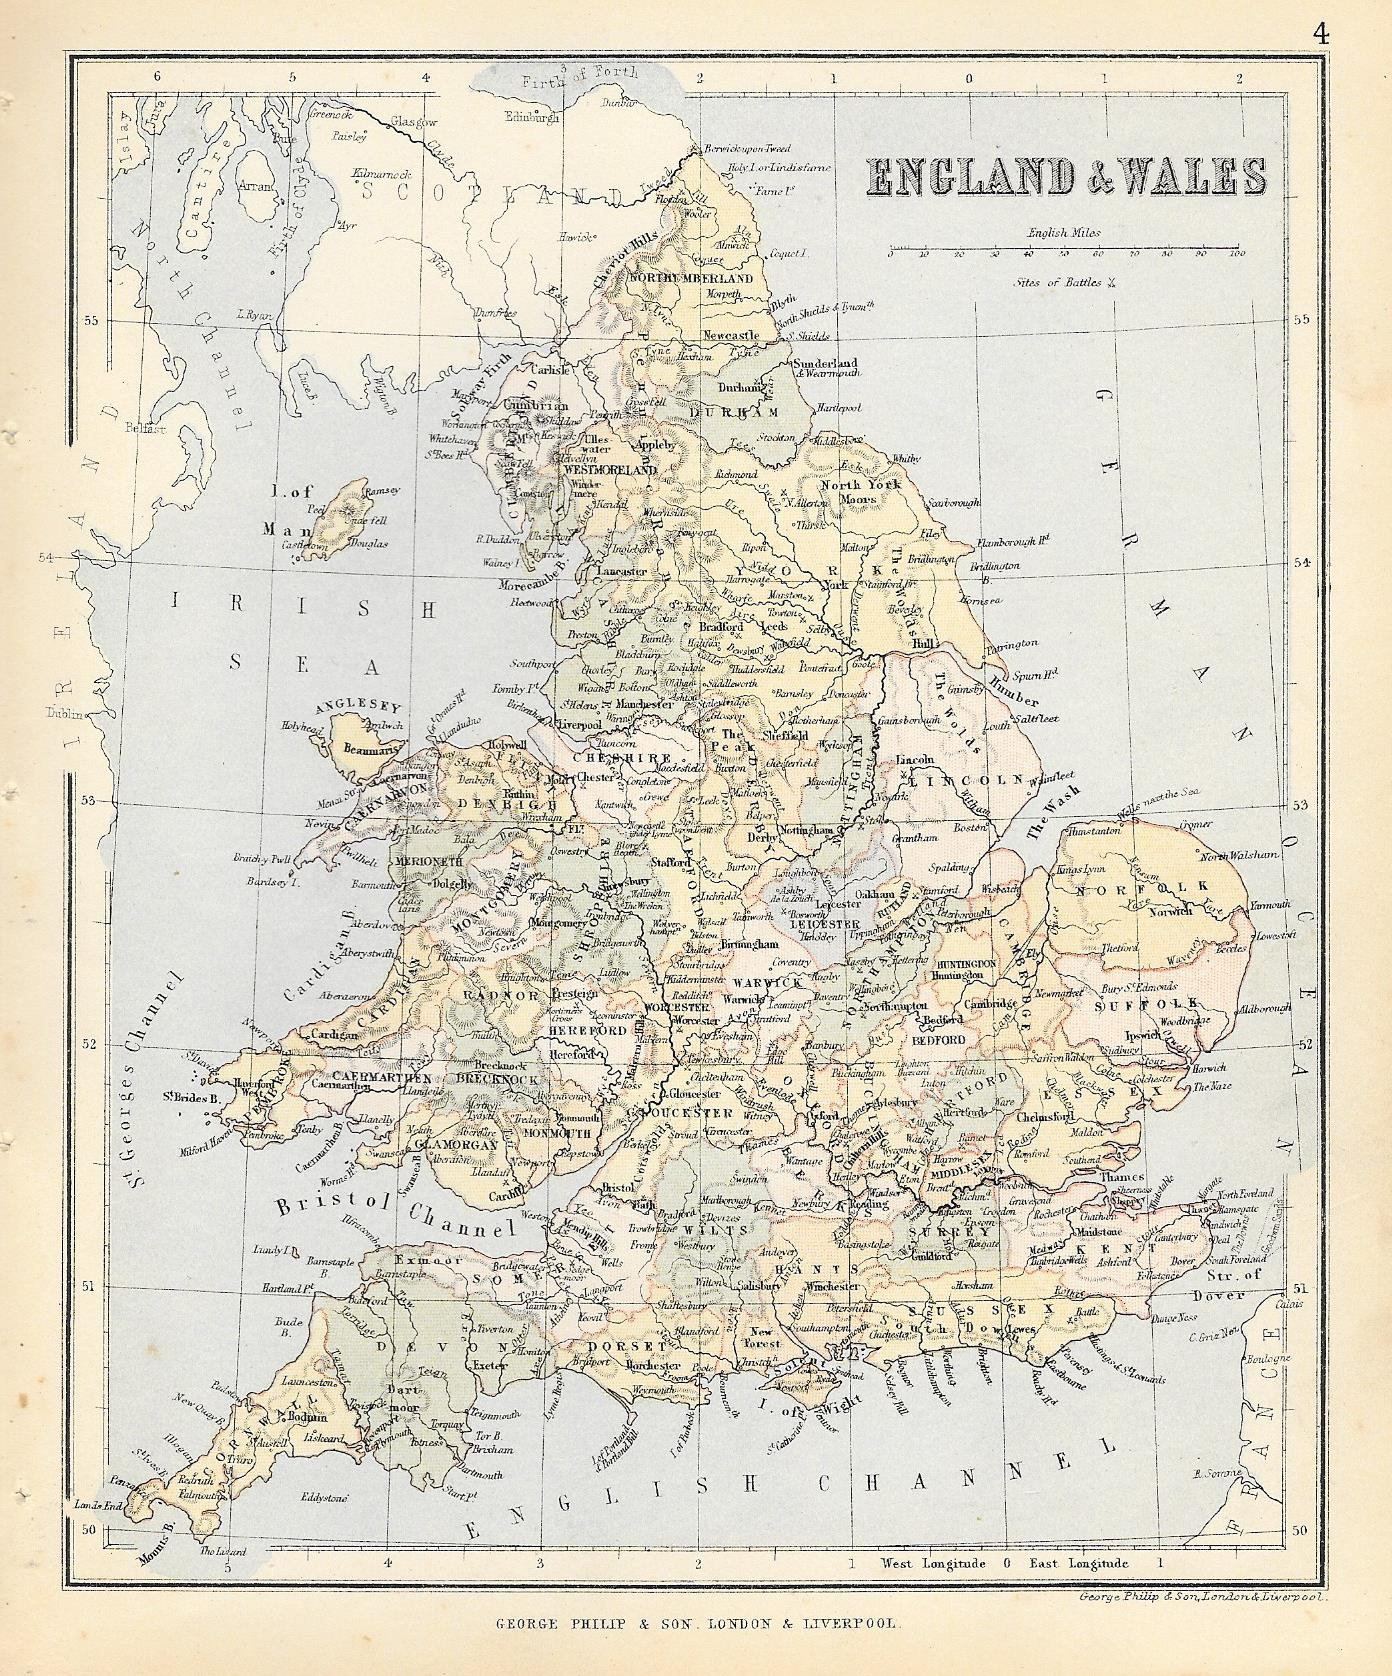 Map Of England Wales.England Wales Antique Map